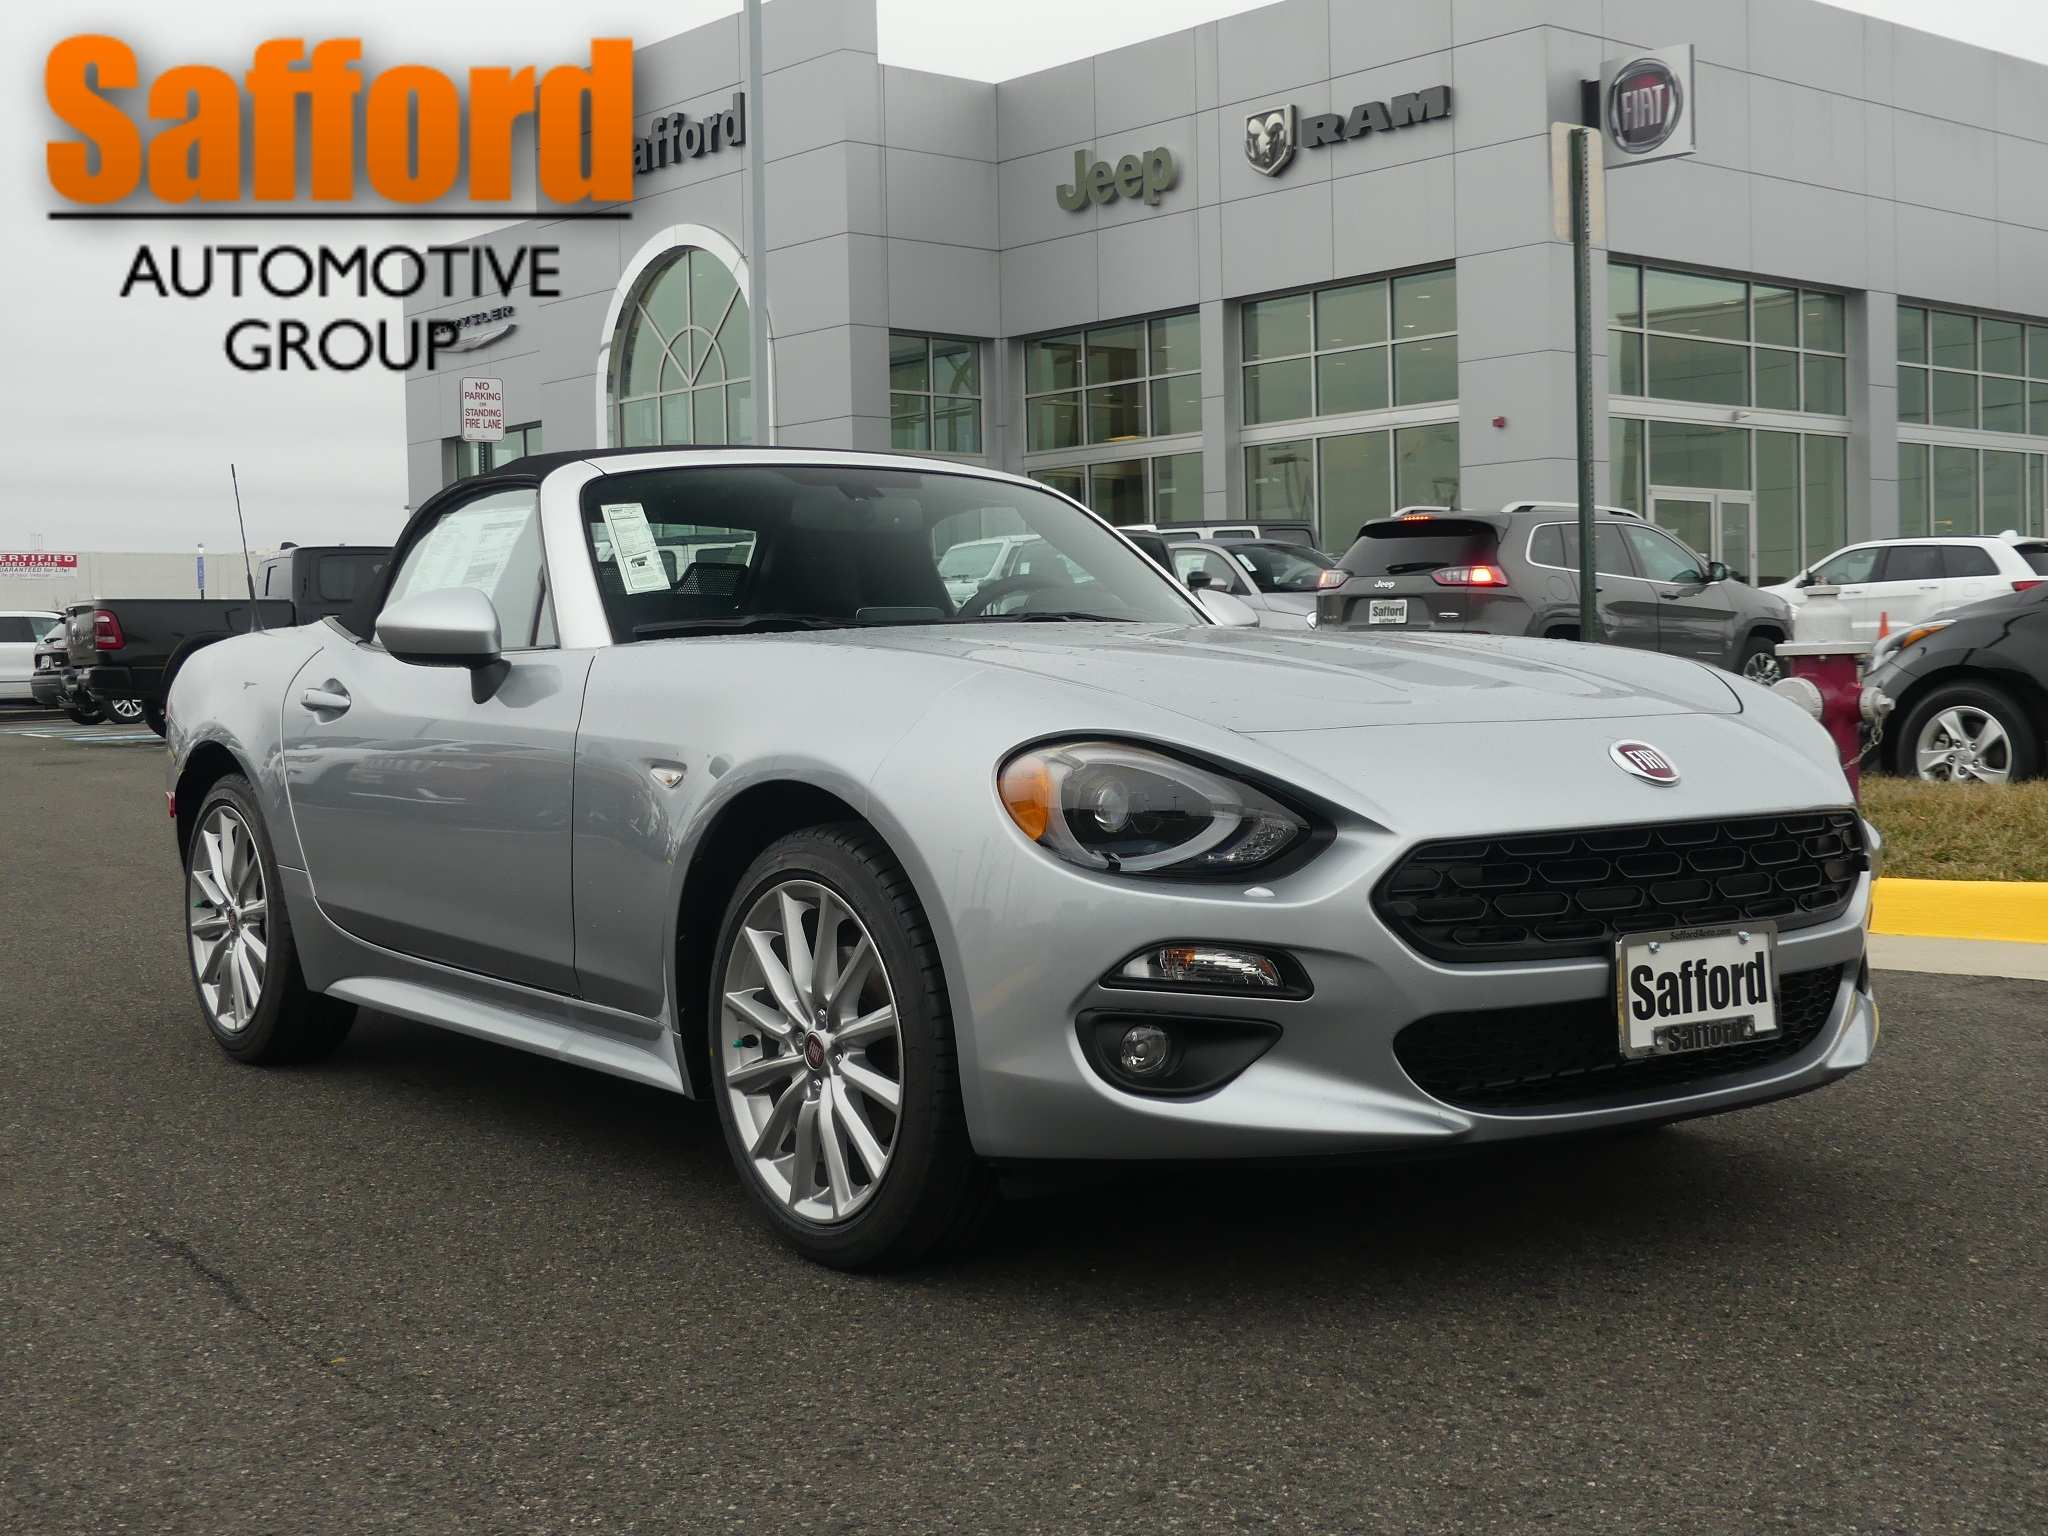 28 Gallery of 2019 Fiat 124 Spider Lusso Review for 2019 Fiat 124 Spider Lusso